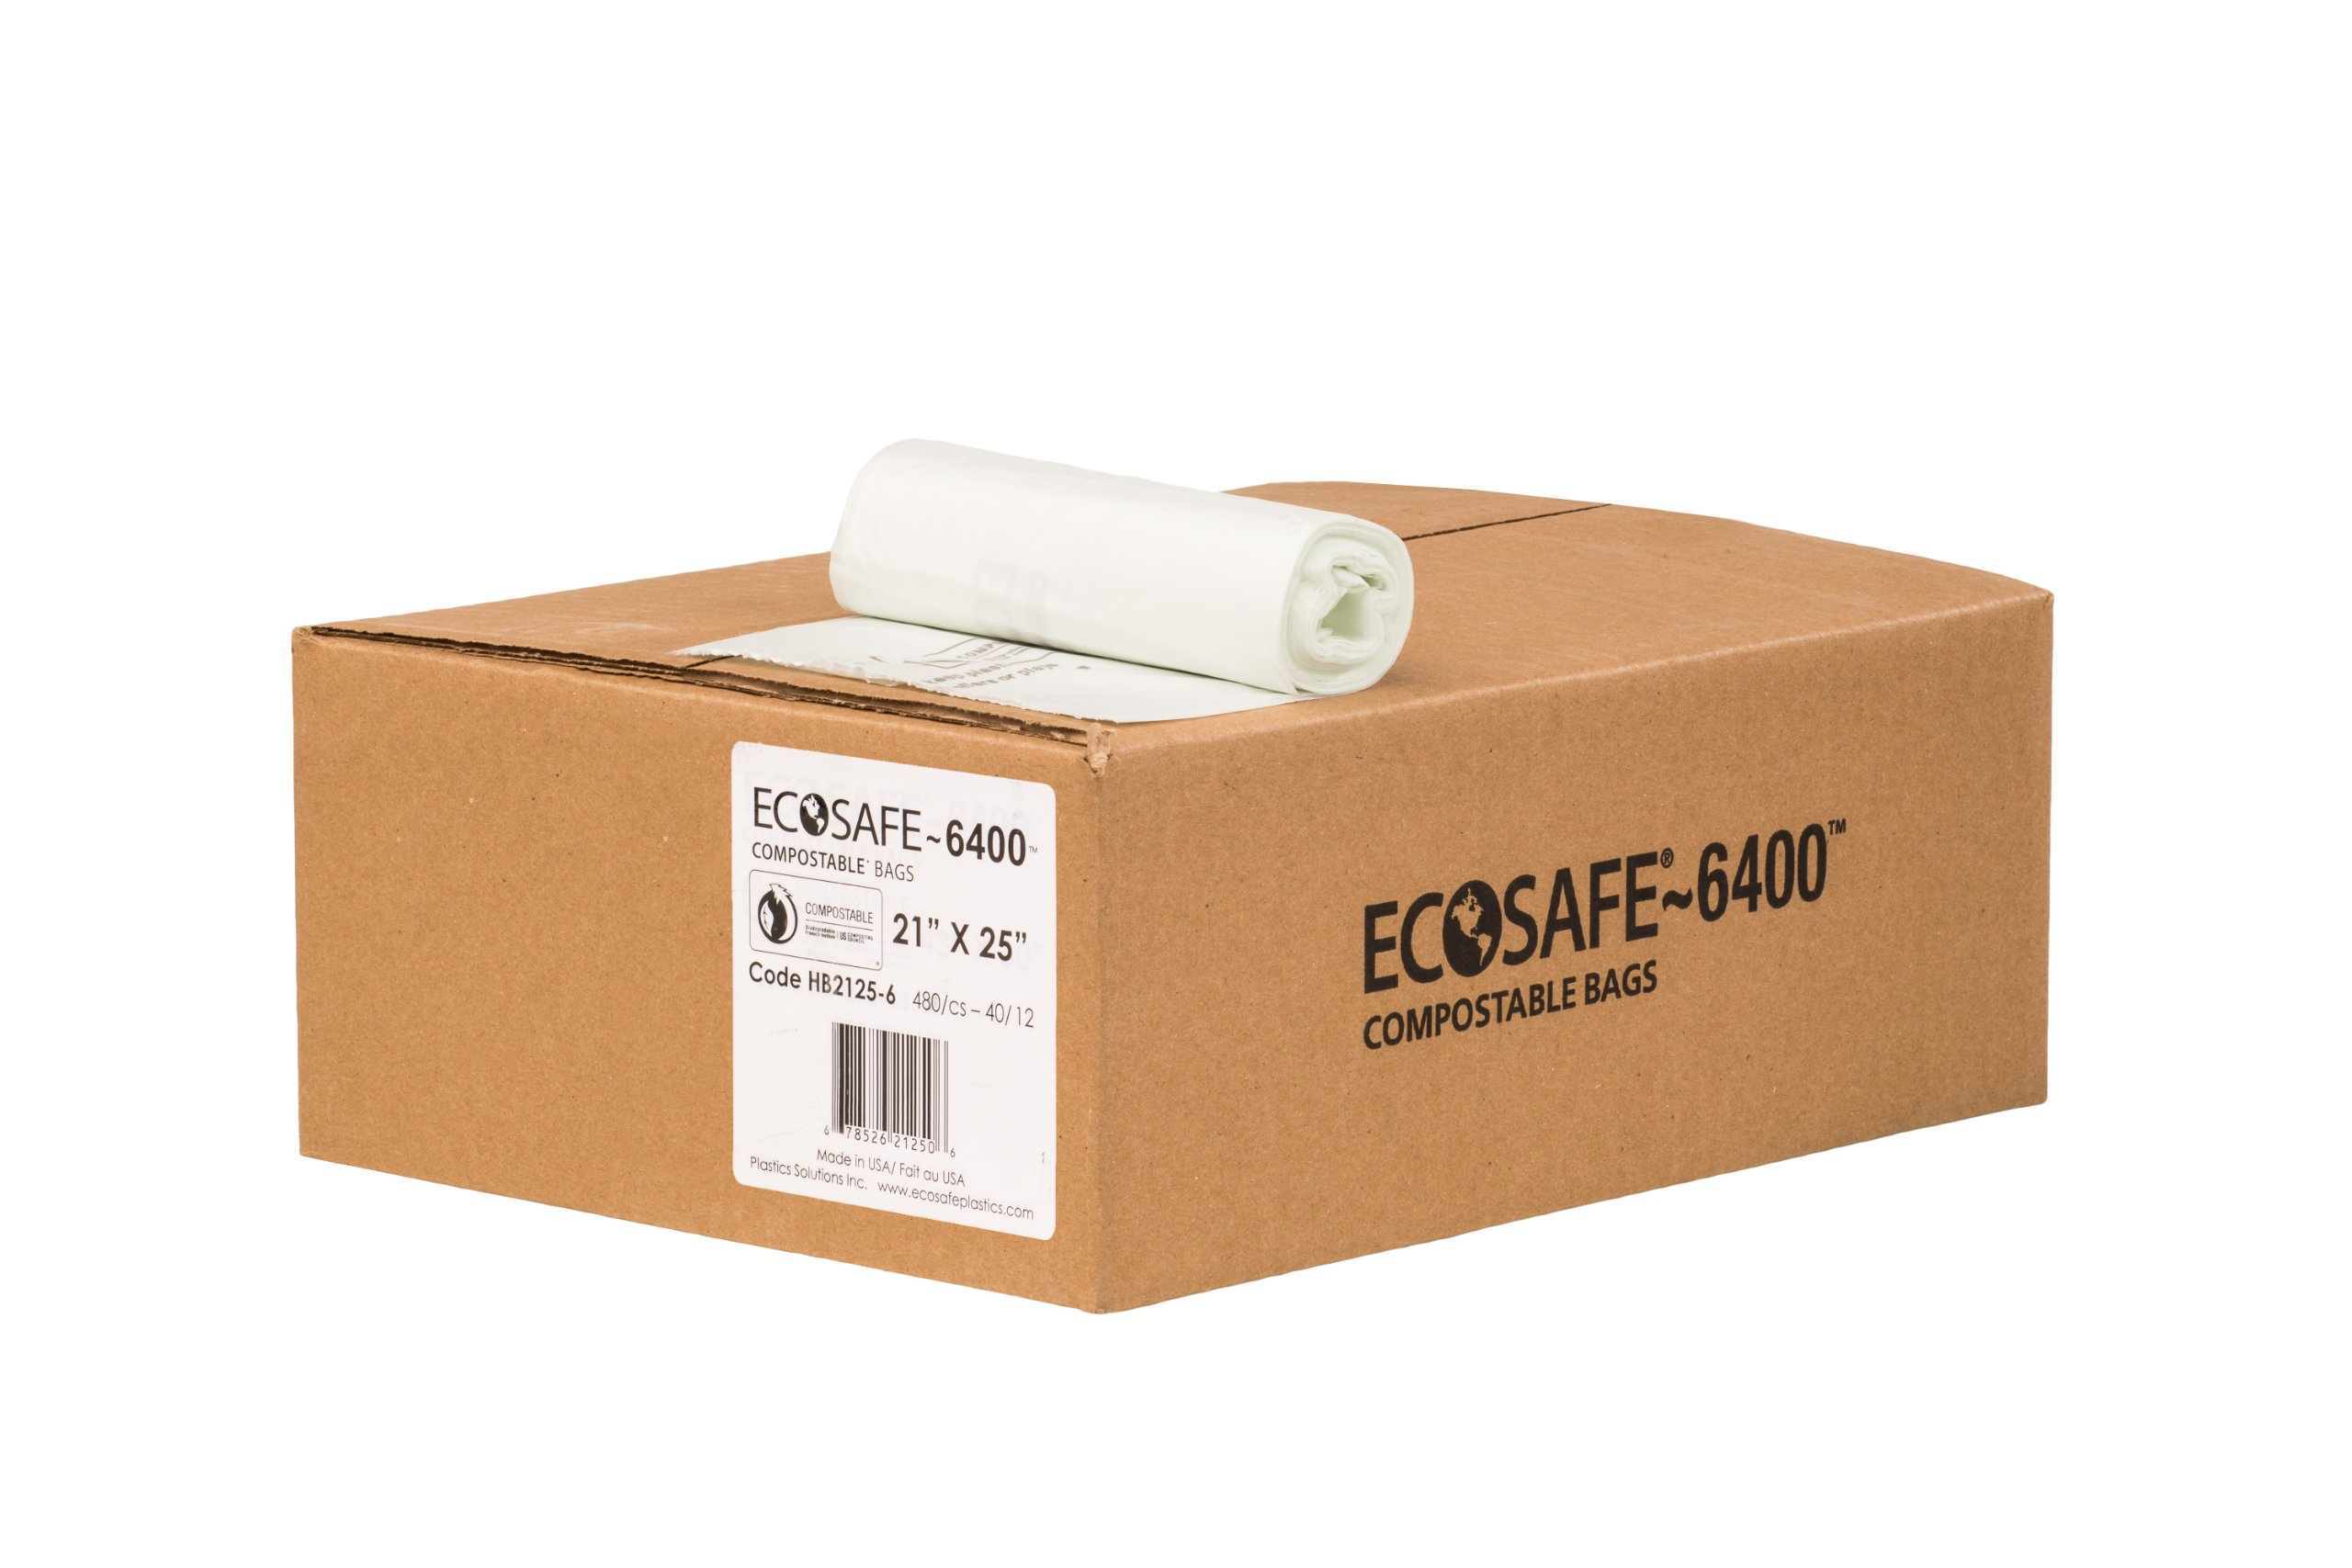 EcoSafe-6400 HB2125-6 Compostable Bag, Certified Compostable, 8-Gallon, Green (Pack of 480) by EcoSafe